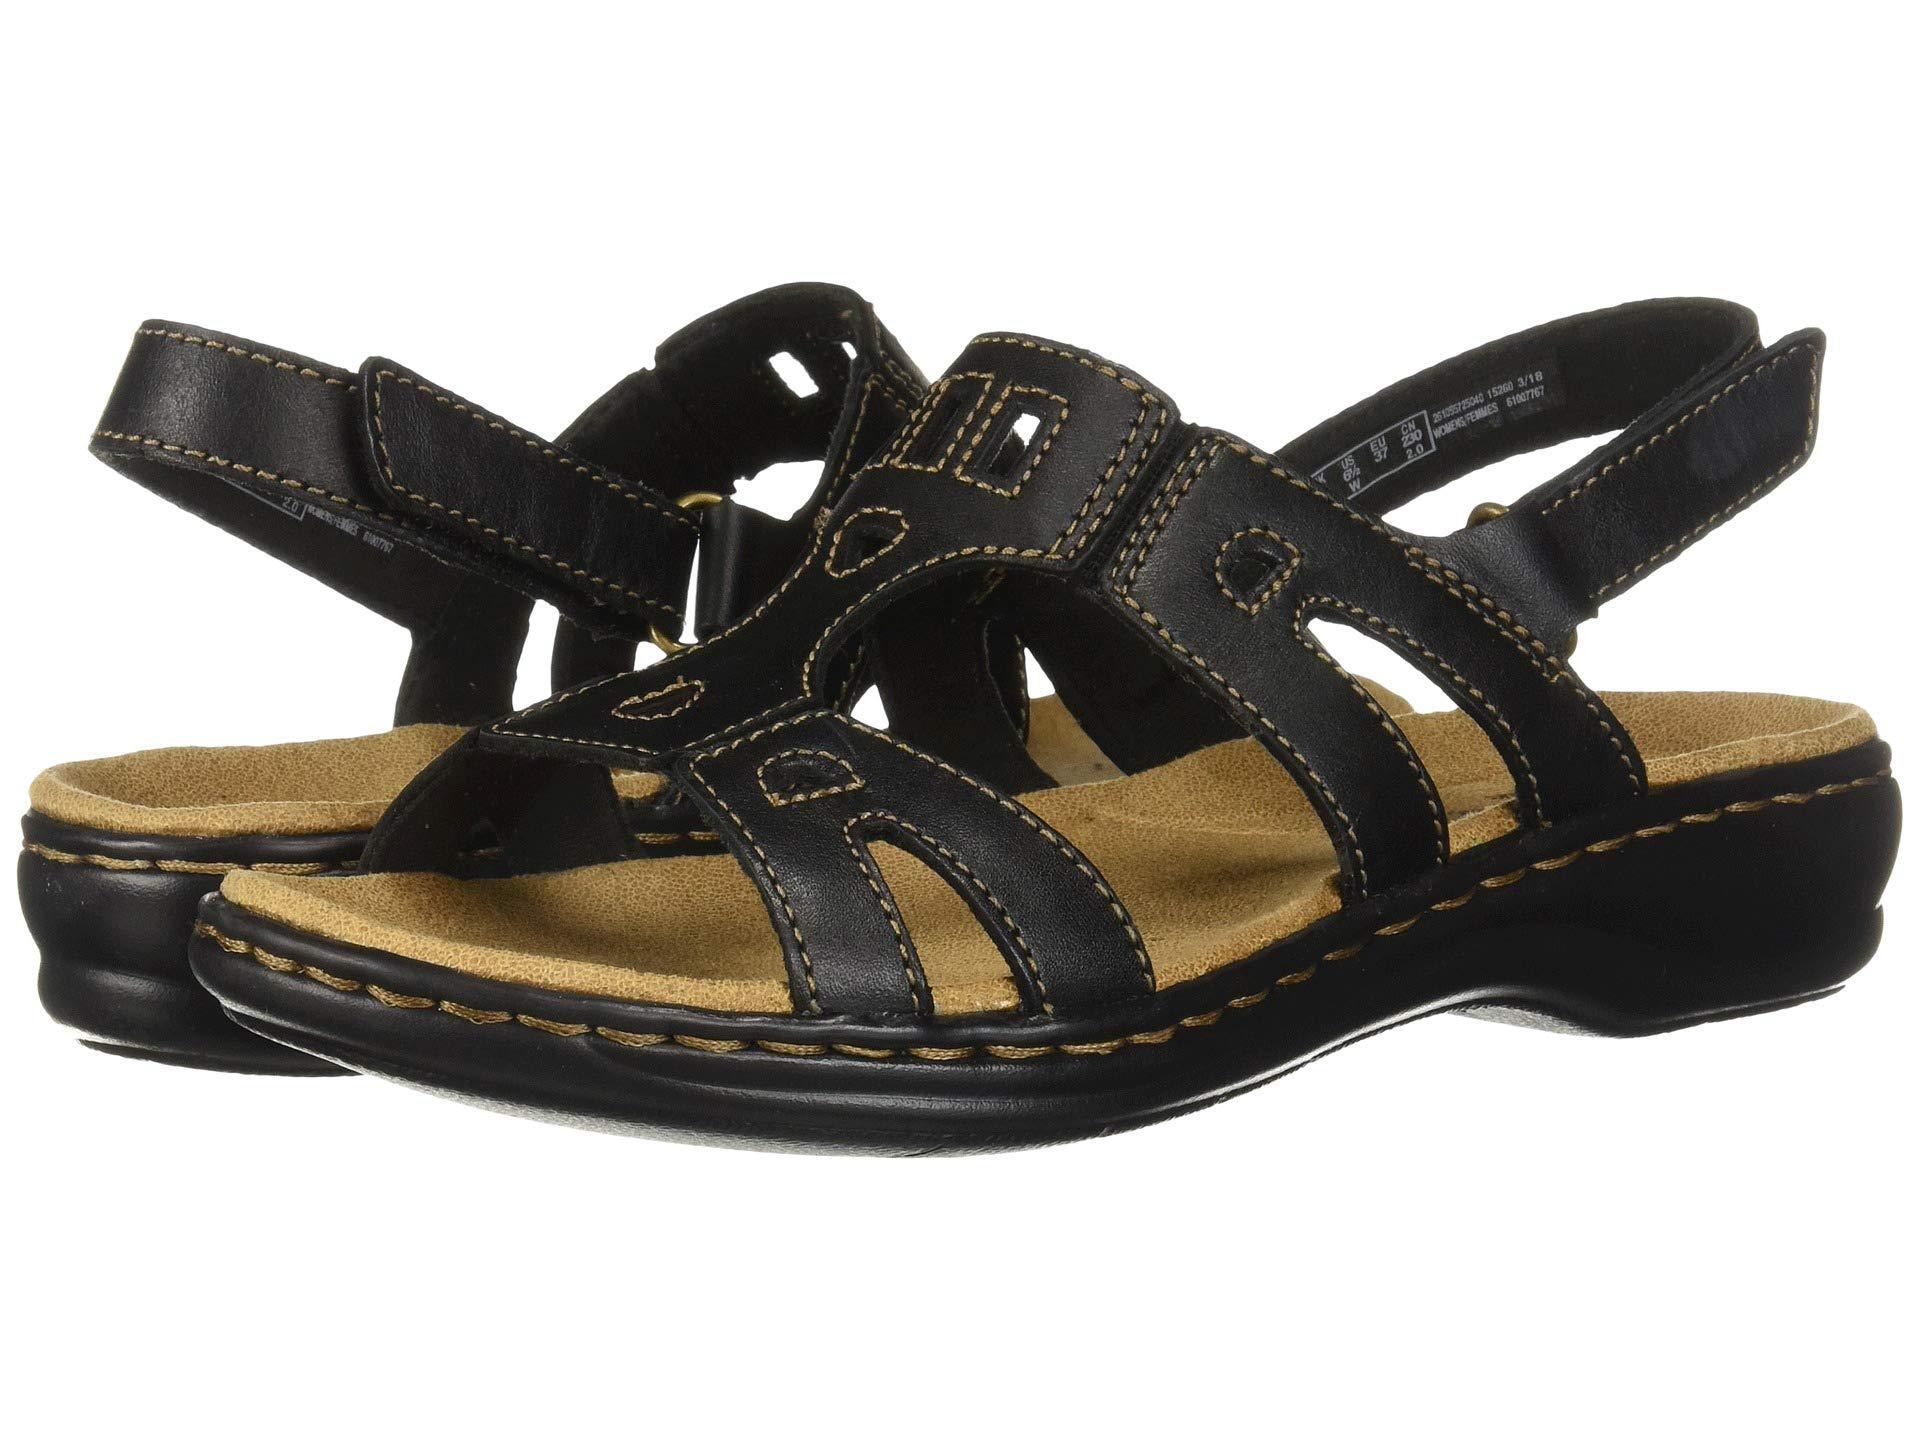 68b152121edd Lyst - Clarks Leisa Annual (dark Tan Leather) Women s Sandals in Black